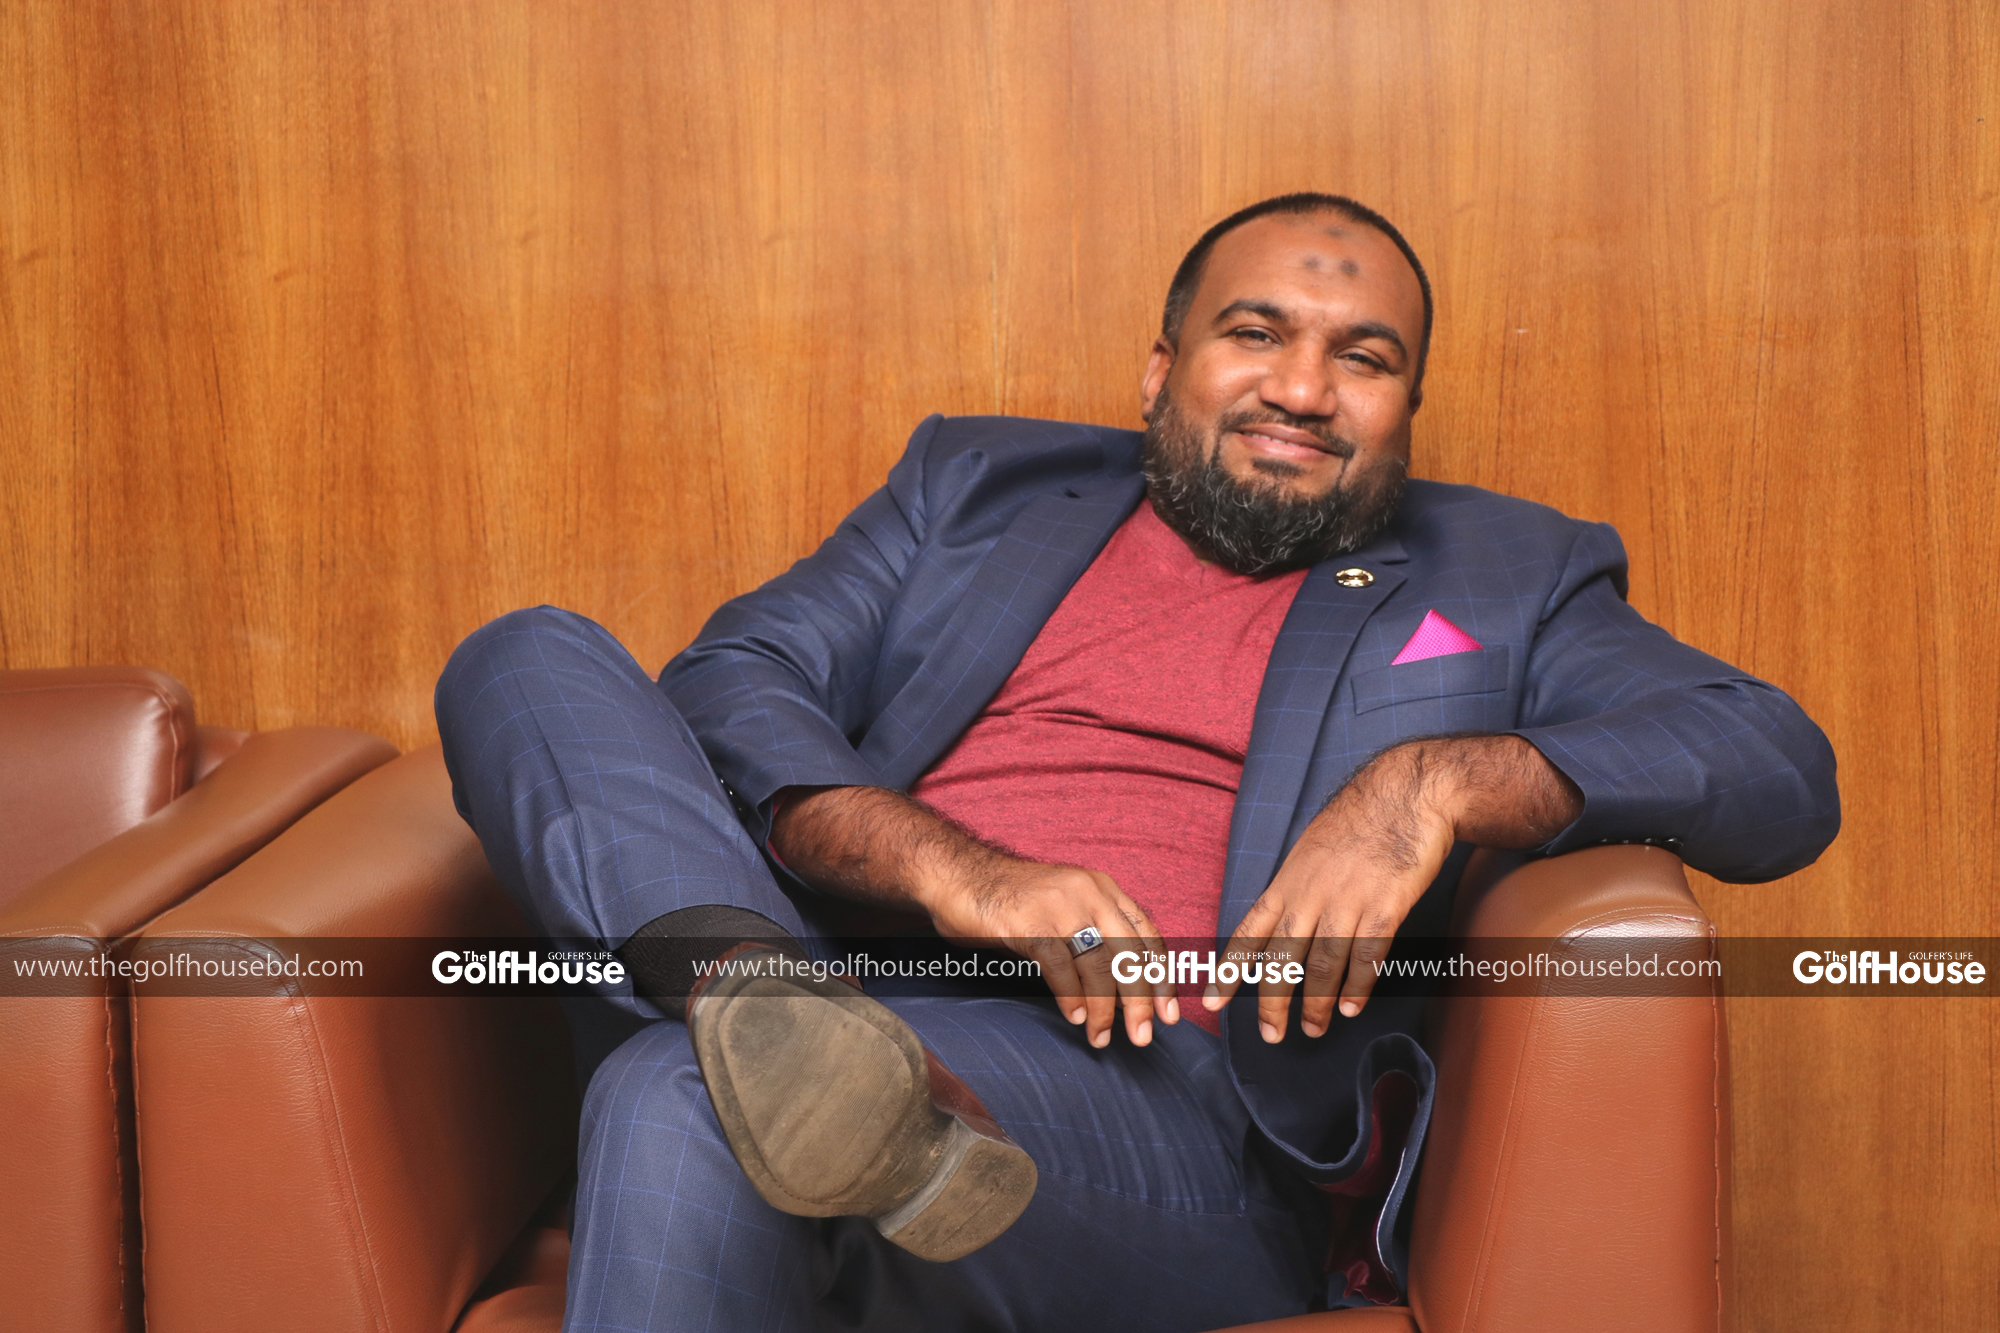 Mushtaq_Luhar_is_the_general_manager_of_the_Peninsula_Hotel_in_Chittagong.